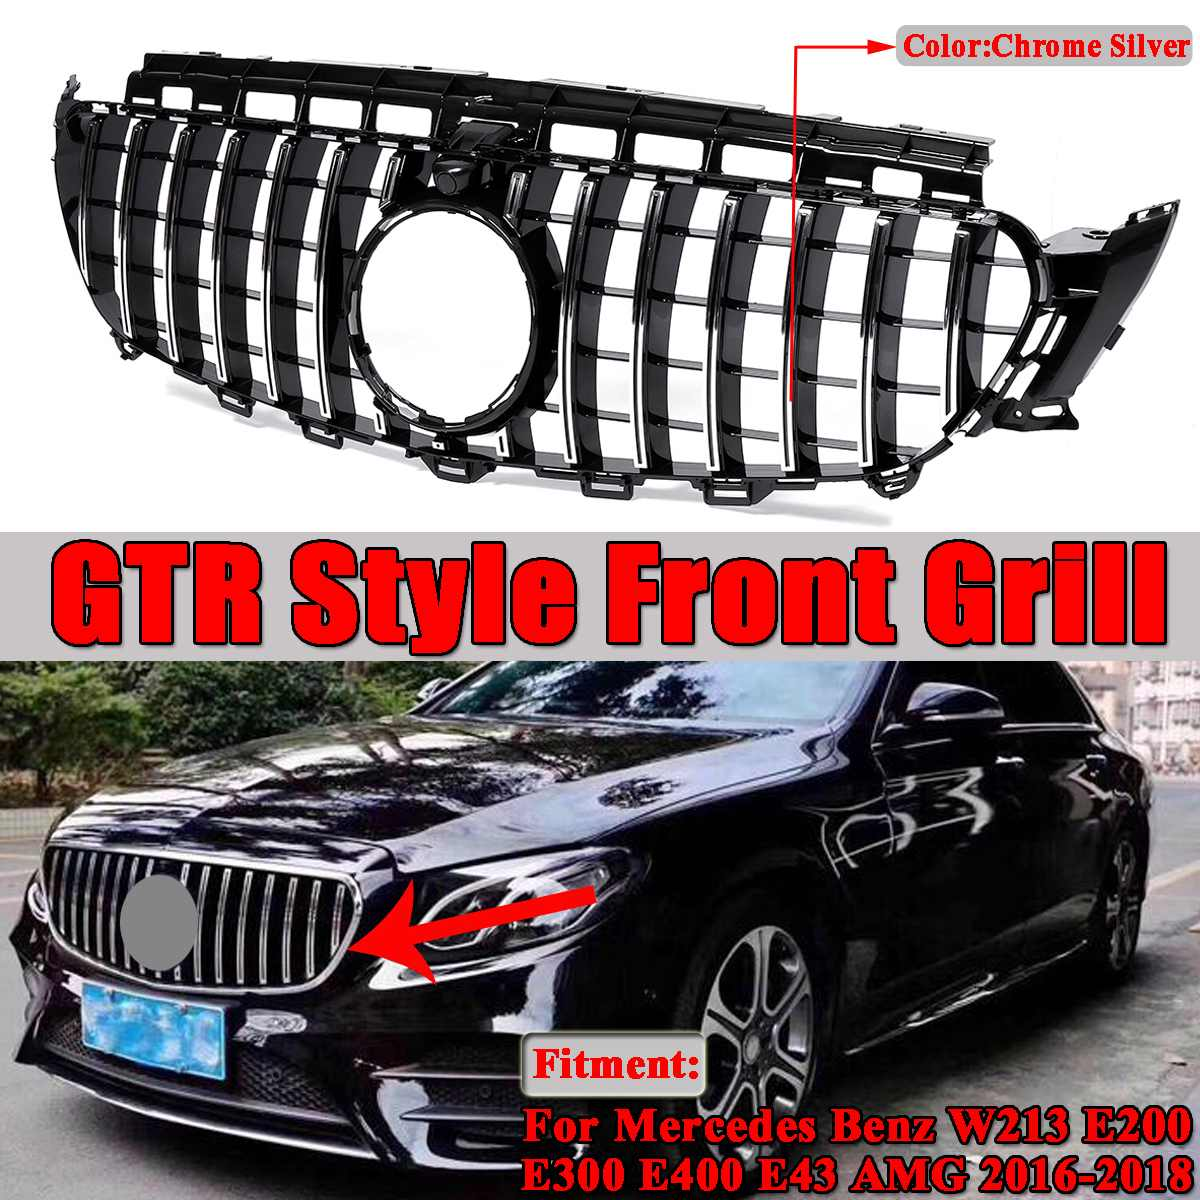 1x GT R / Diamond Style W213 Grlil Car Front Grille For Mercedes For Benz W213 E200 E300 E400 E43 For AMG 2016 2017 2018 2019 image